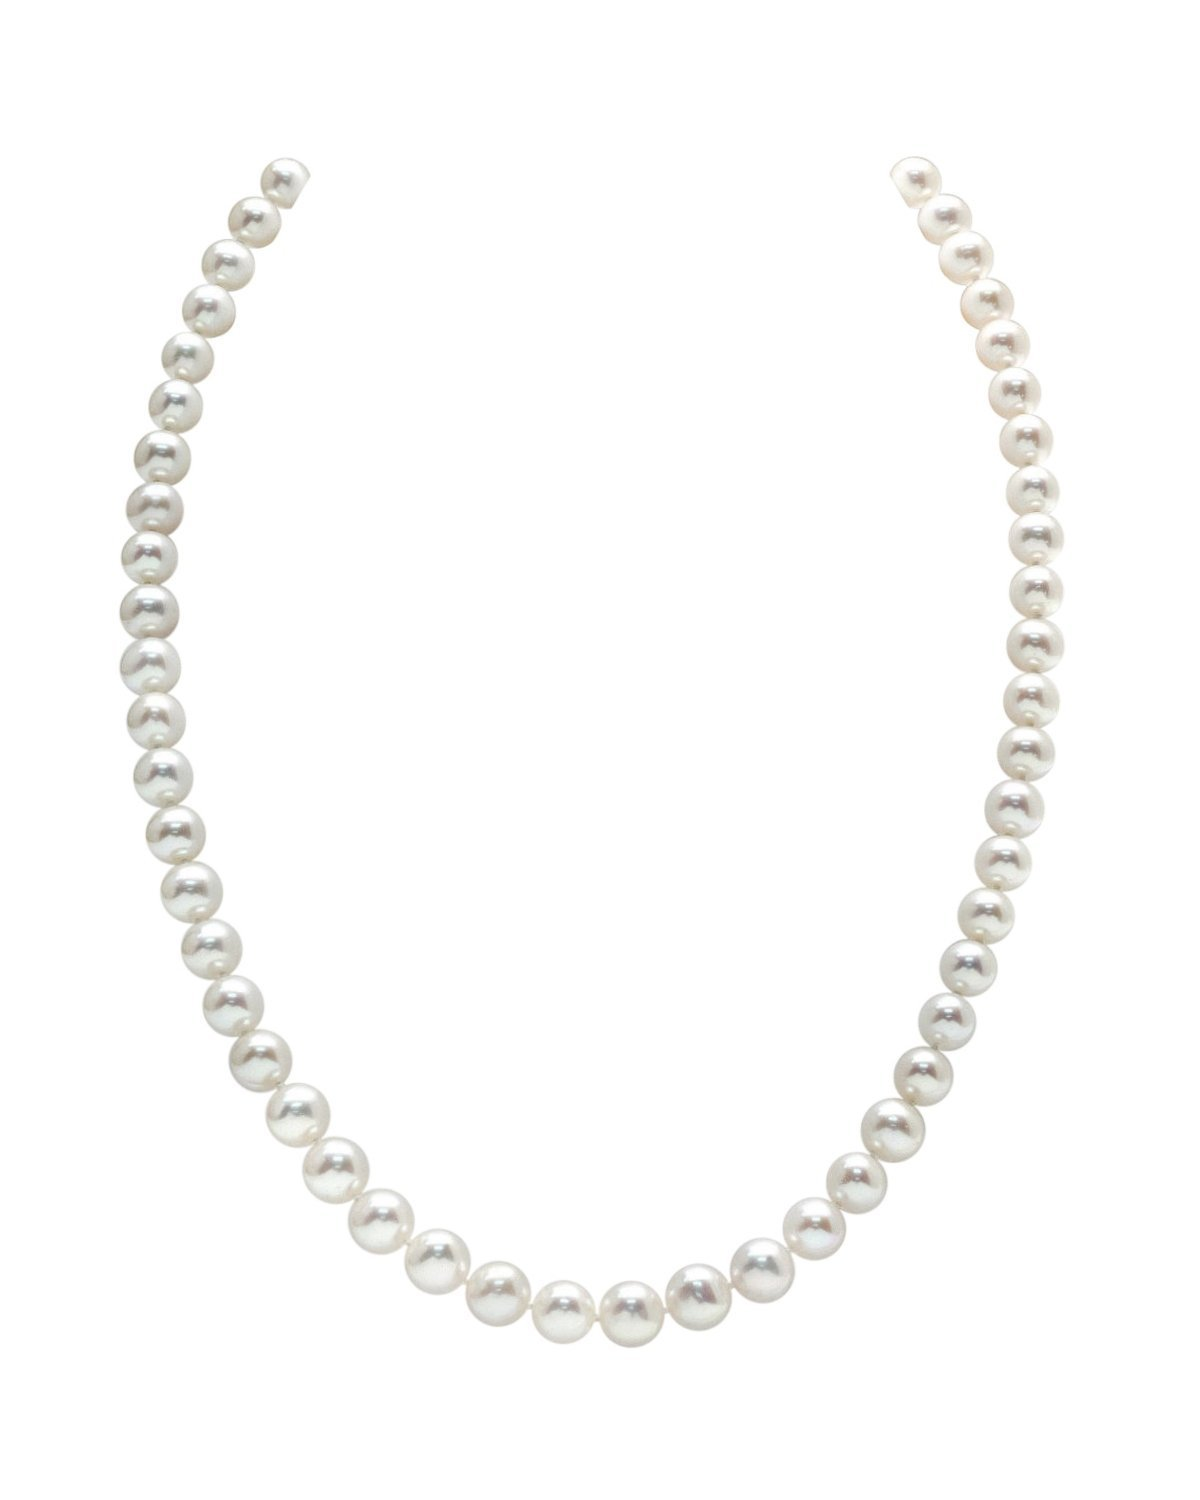 THE PEARL SOURCE 14K Gold 6.5-7.0mm AAAA Quality White Freshwater Cultured Pearl Necklace for Women in 17'' Princess Length by The Pearl Source